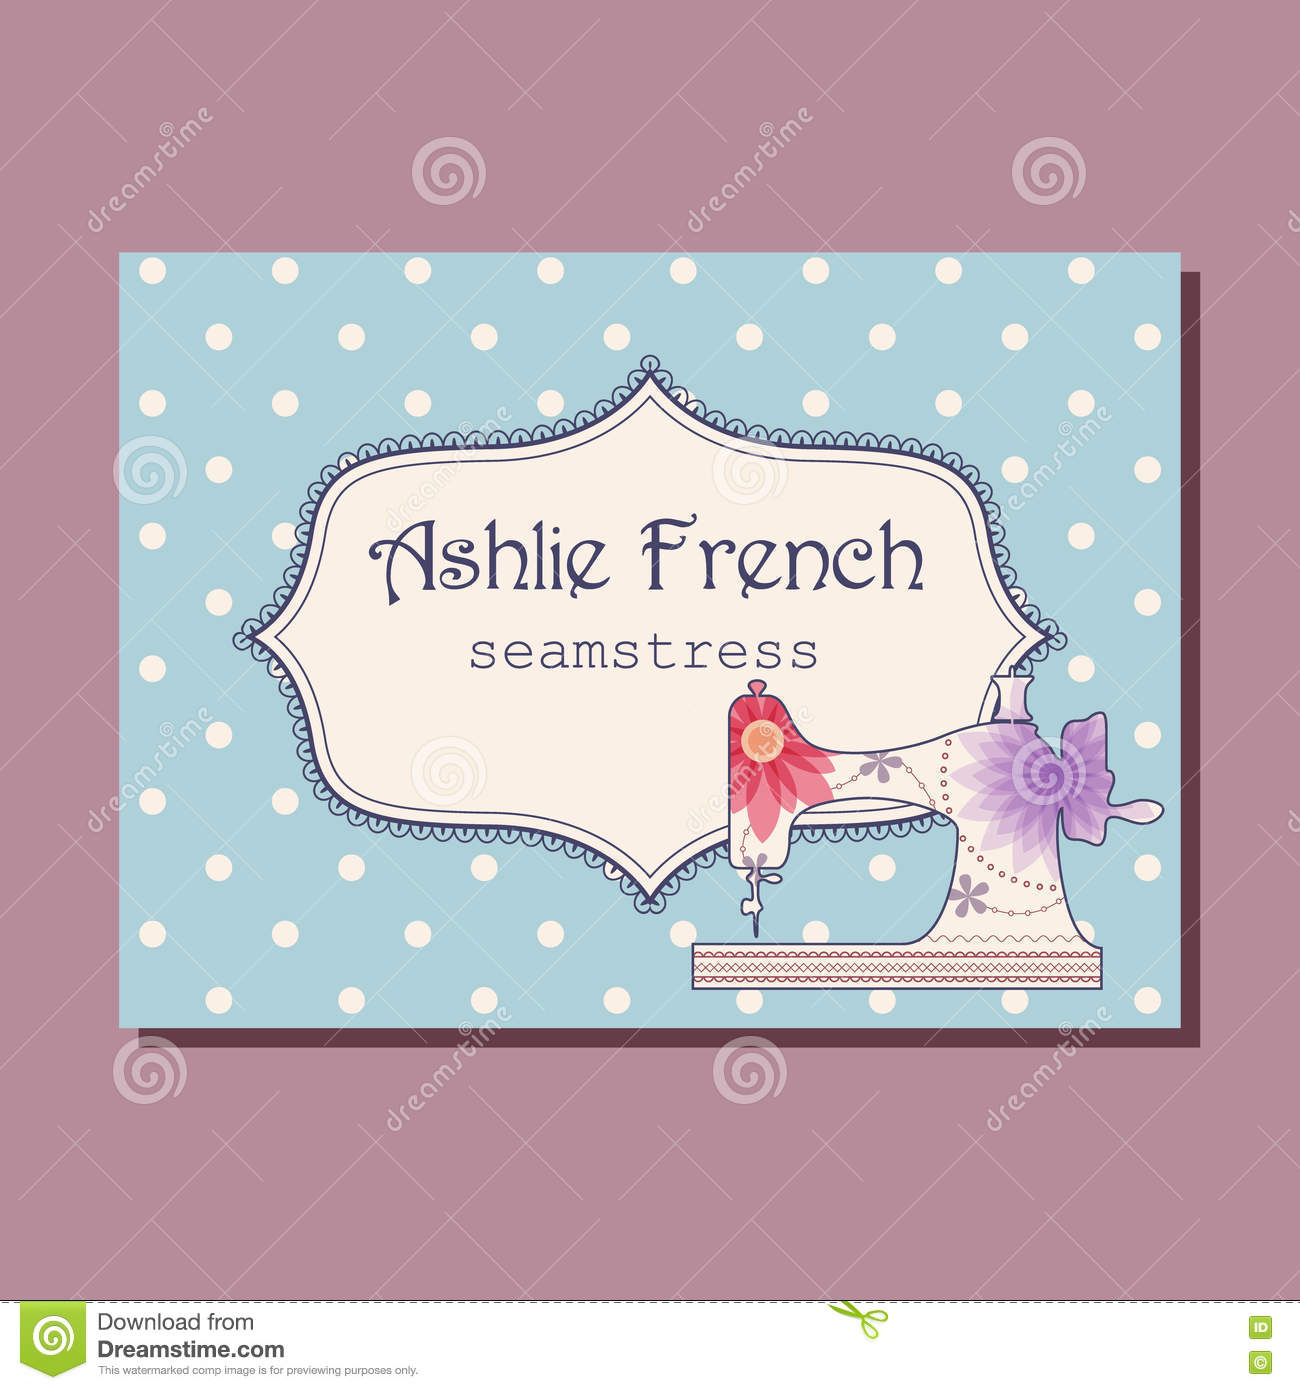 Business Card For Seamstress Stock Vector - Illustration of ornate ...